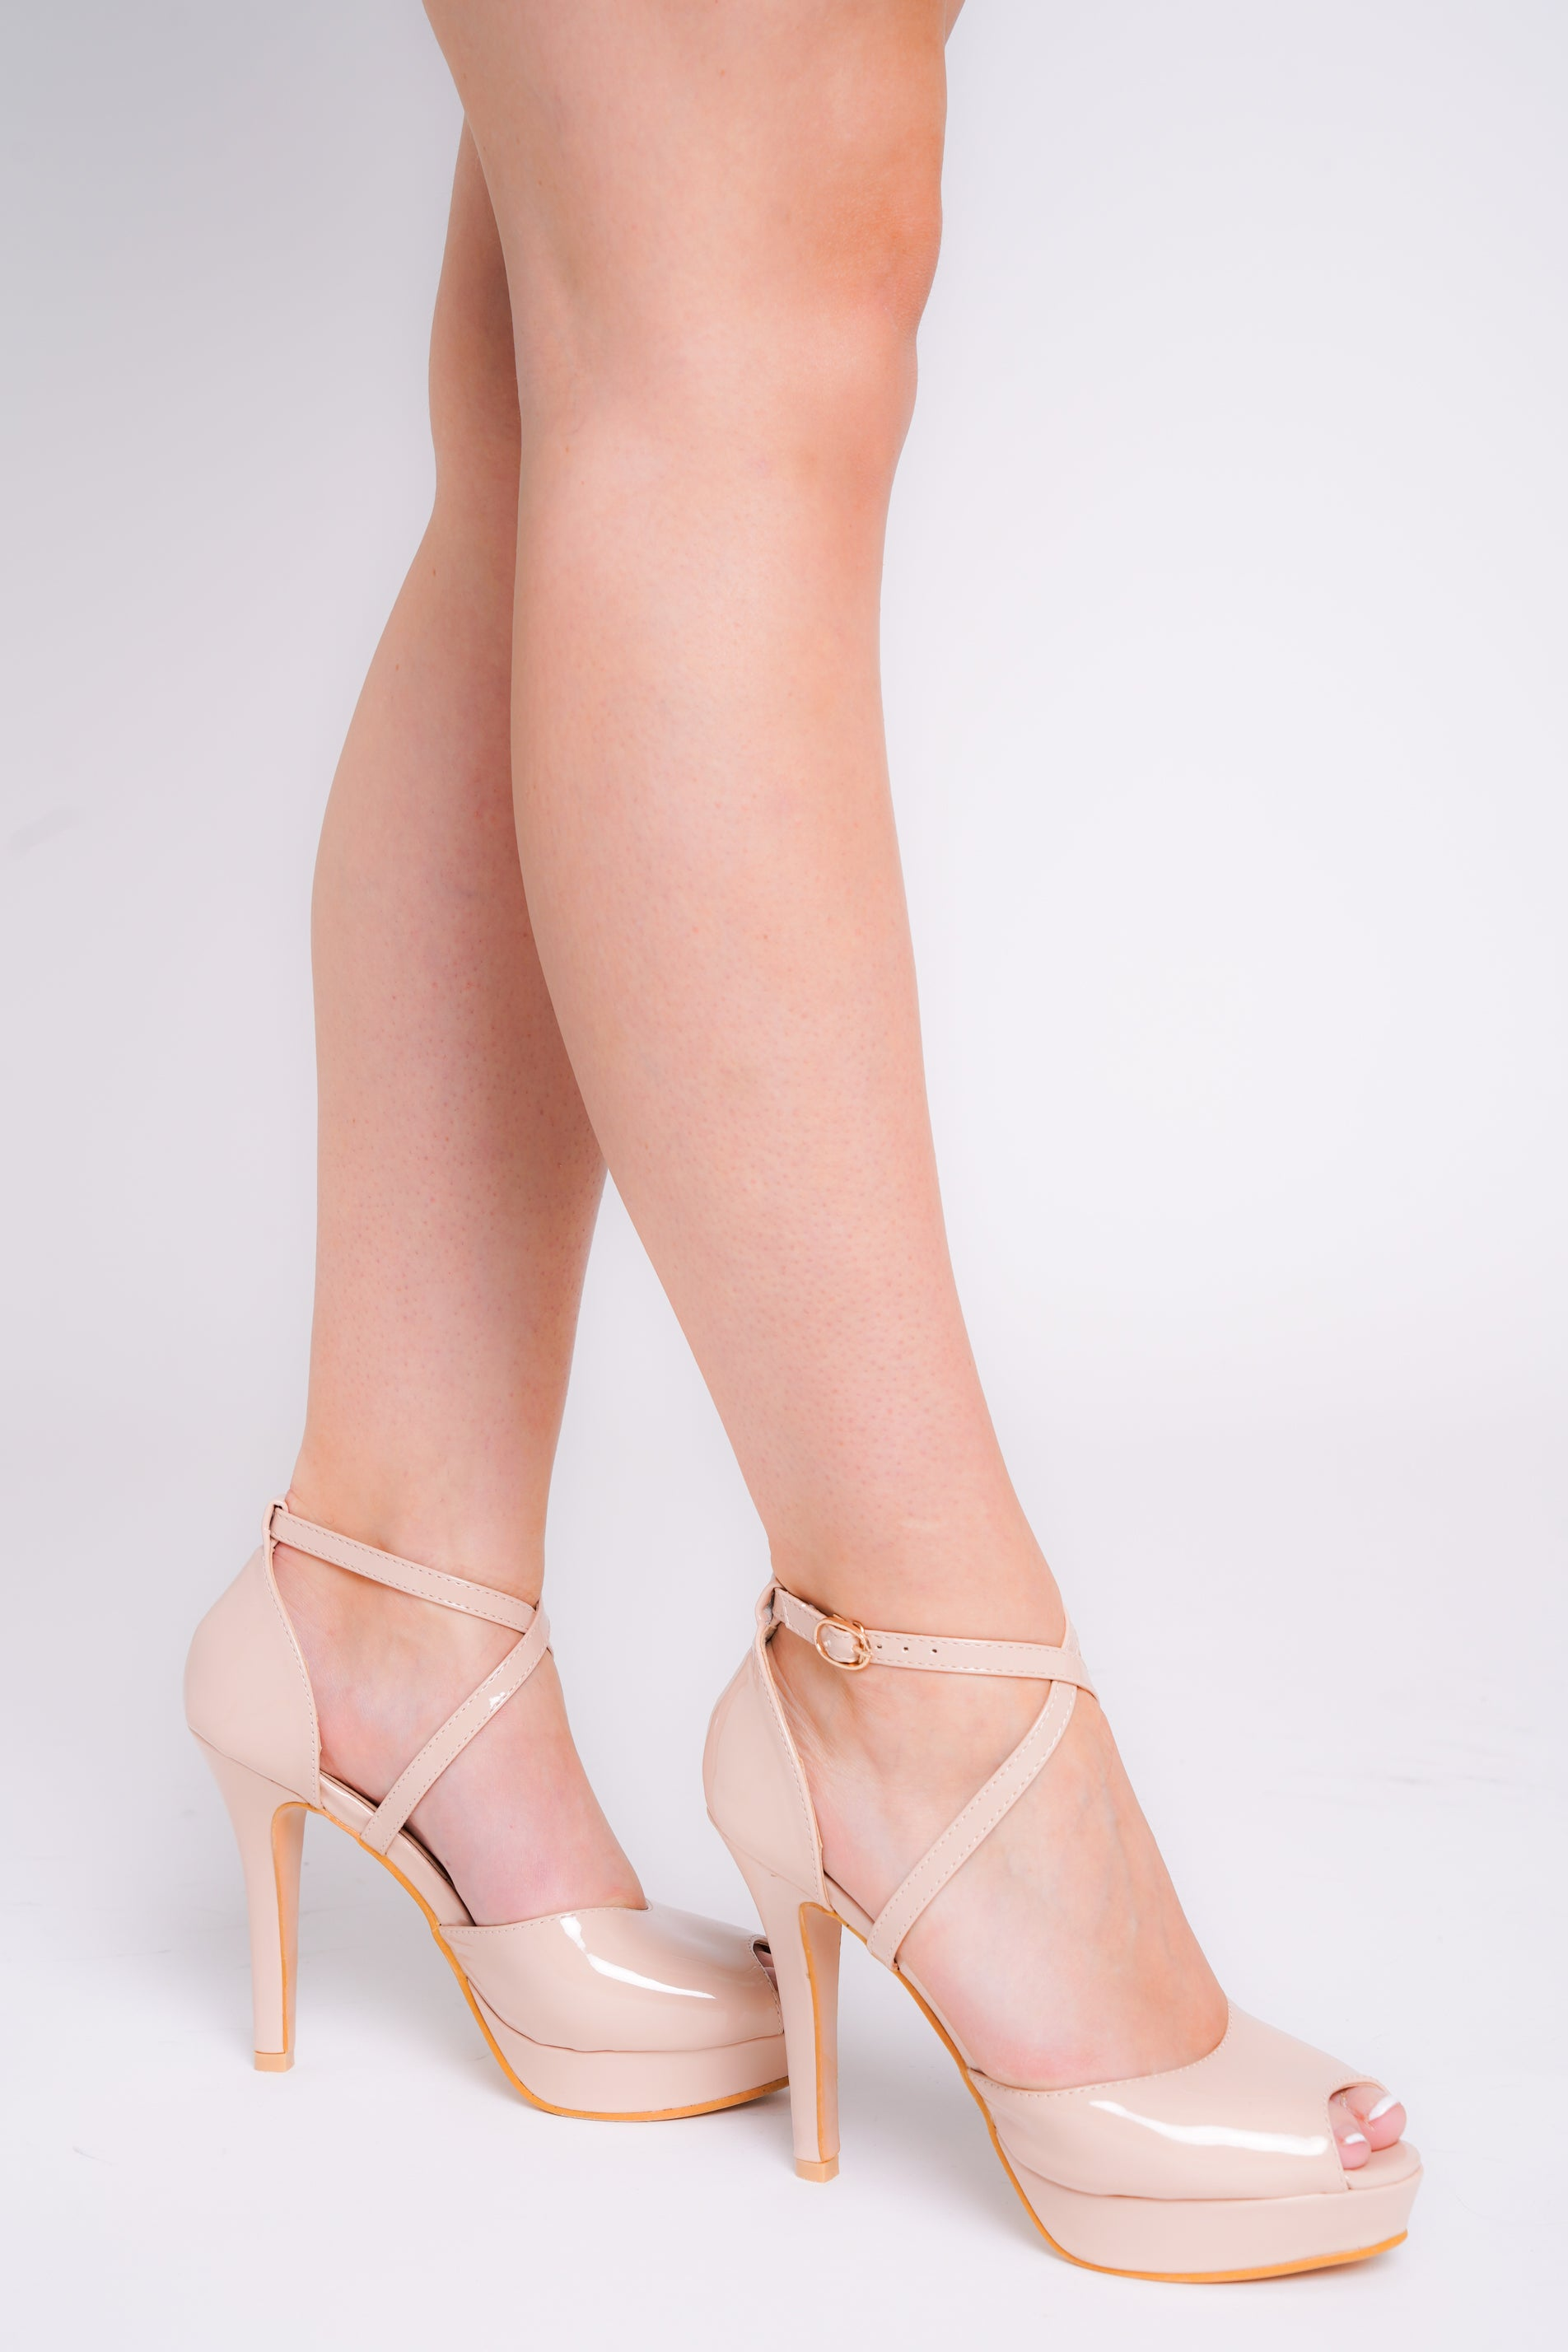 Mia Pink Patent Peep Toe Cross Over Strap Plattform Heels